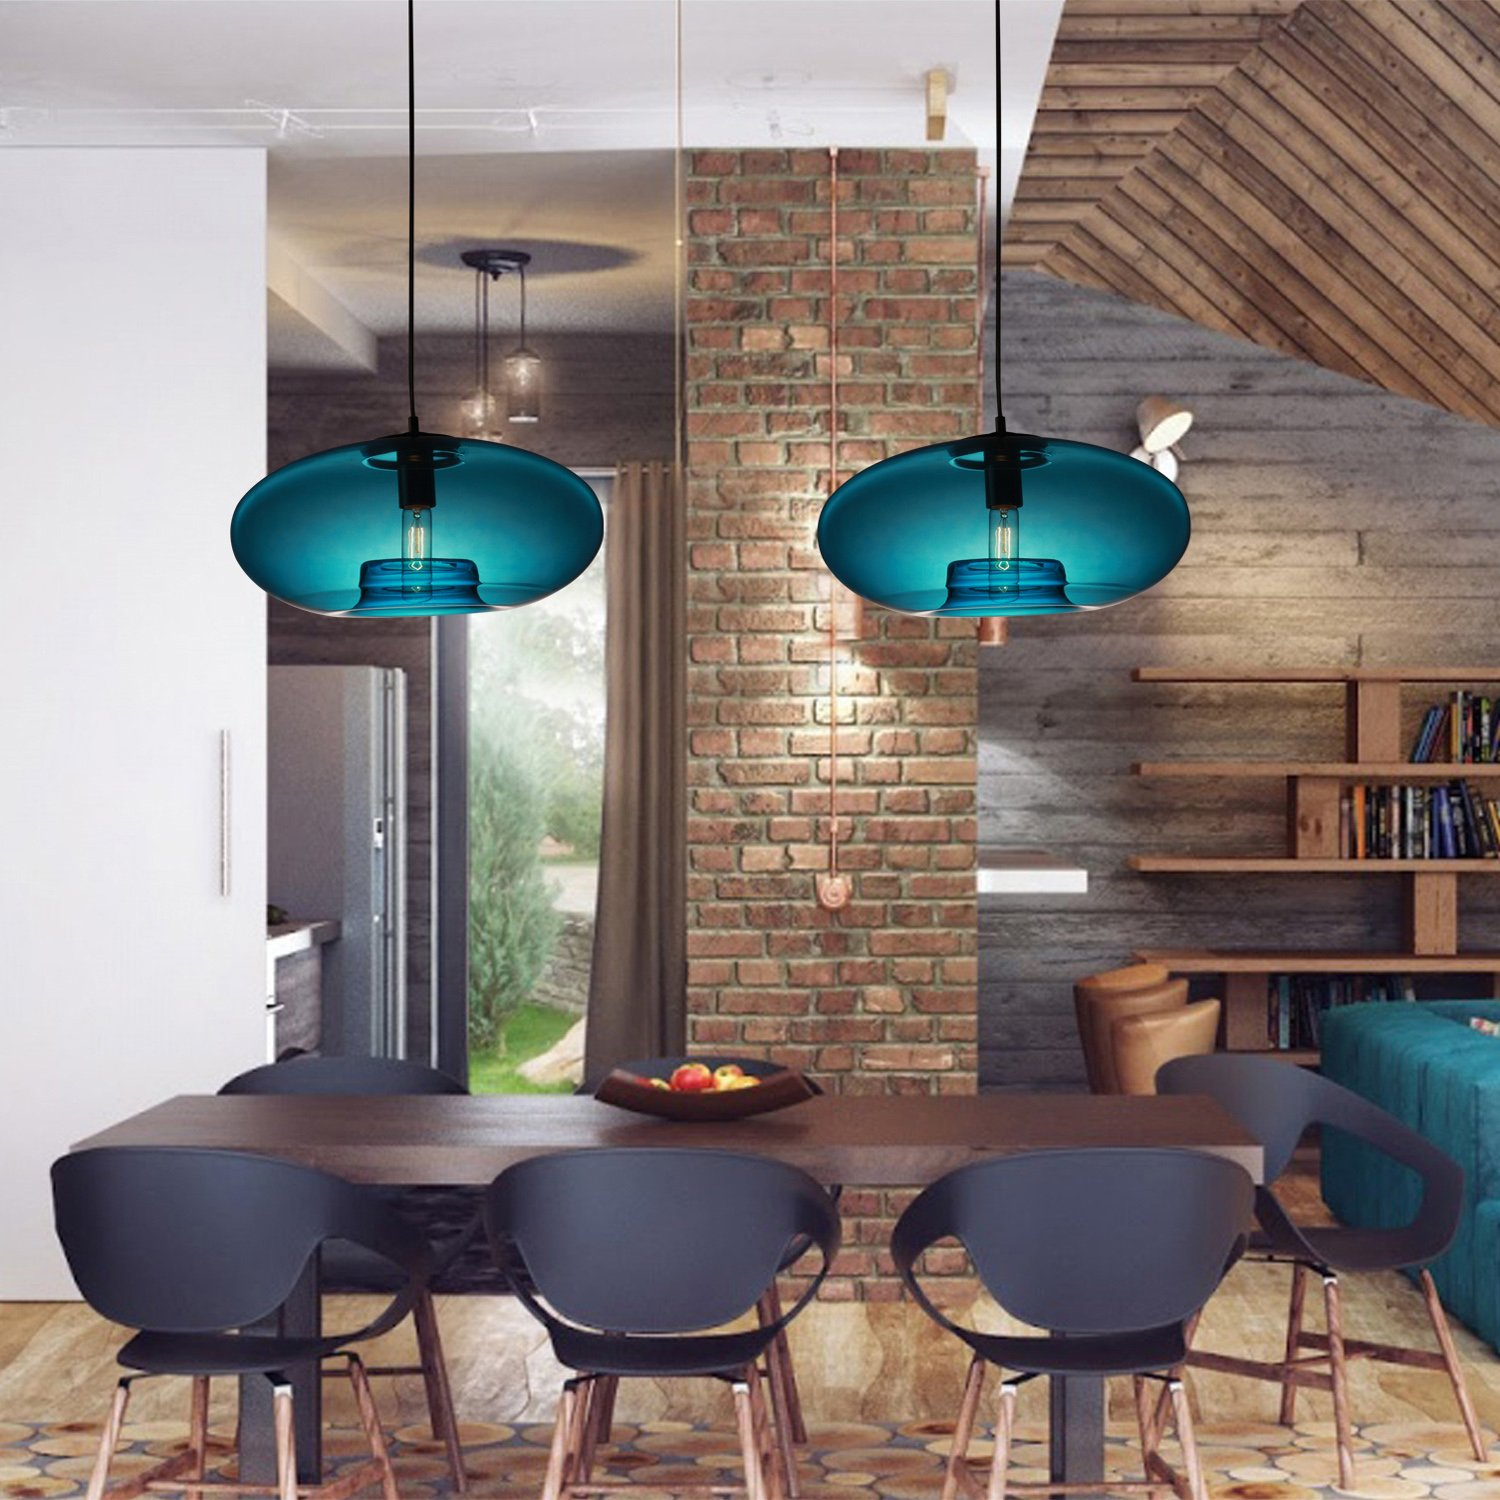 Top 20 pendant luxury lighting blue luxury lighting for dining room design luxury lighting top 20 pendant luxury lighting e2435001303238959623481ef14b4683 aloadofball Image collections